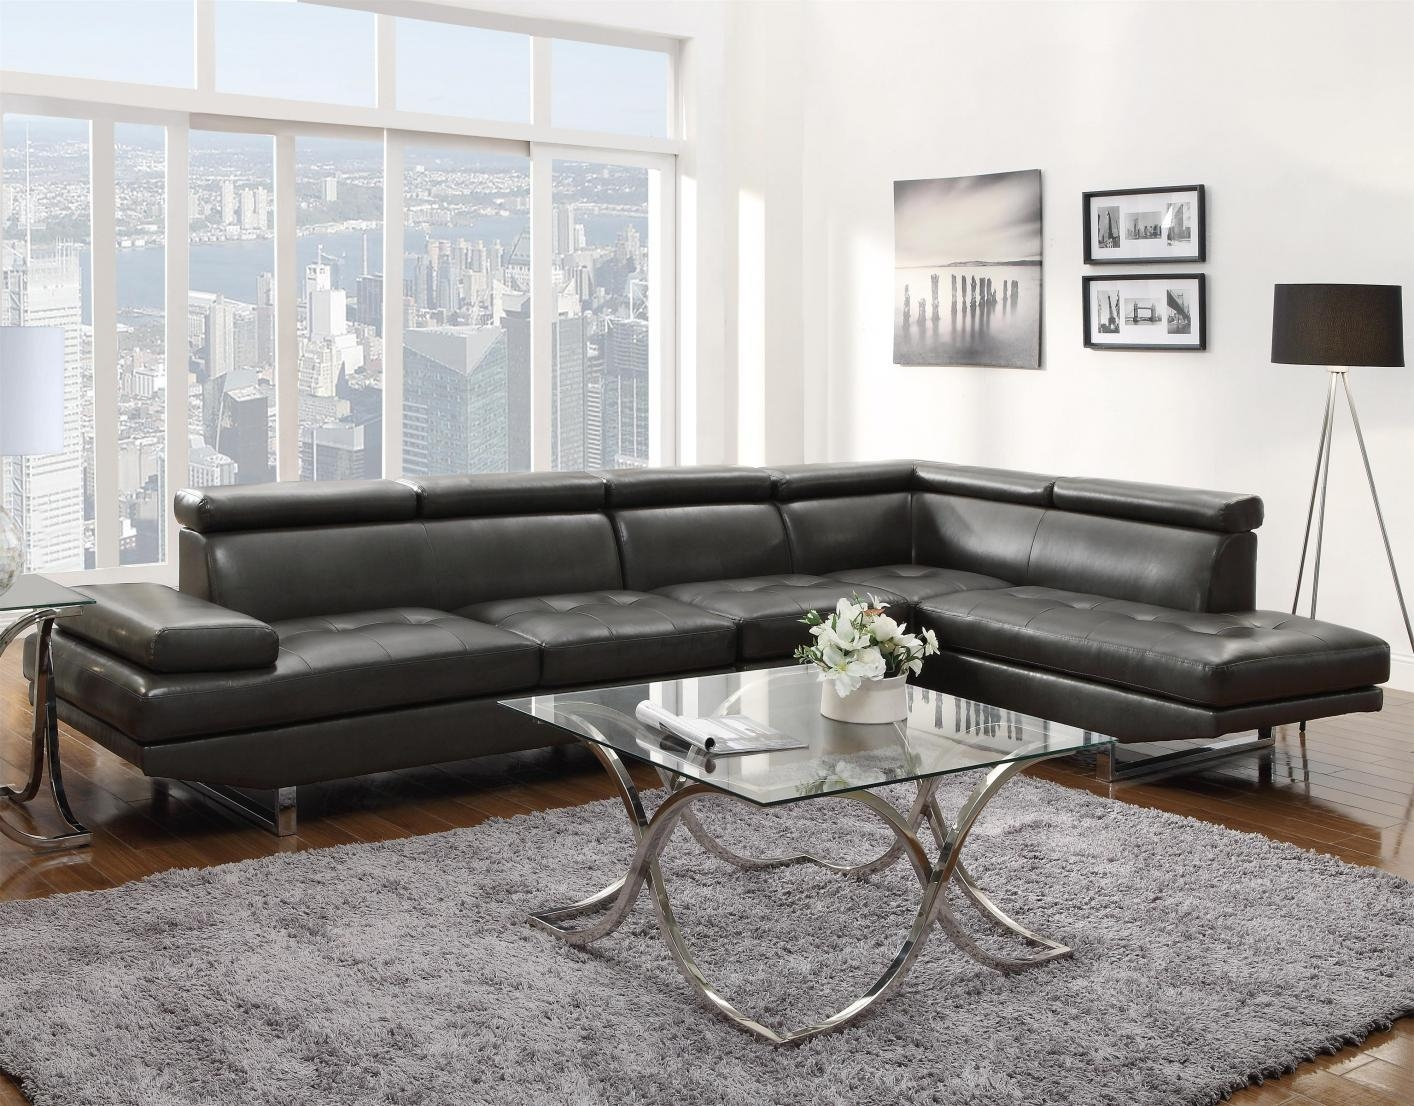 Grey Leather Sectional Sofa – Steal A Sofa Furniture Outlet Los In Gray Leather Sectional Sofas (View 7 of 21)